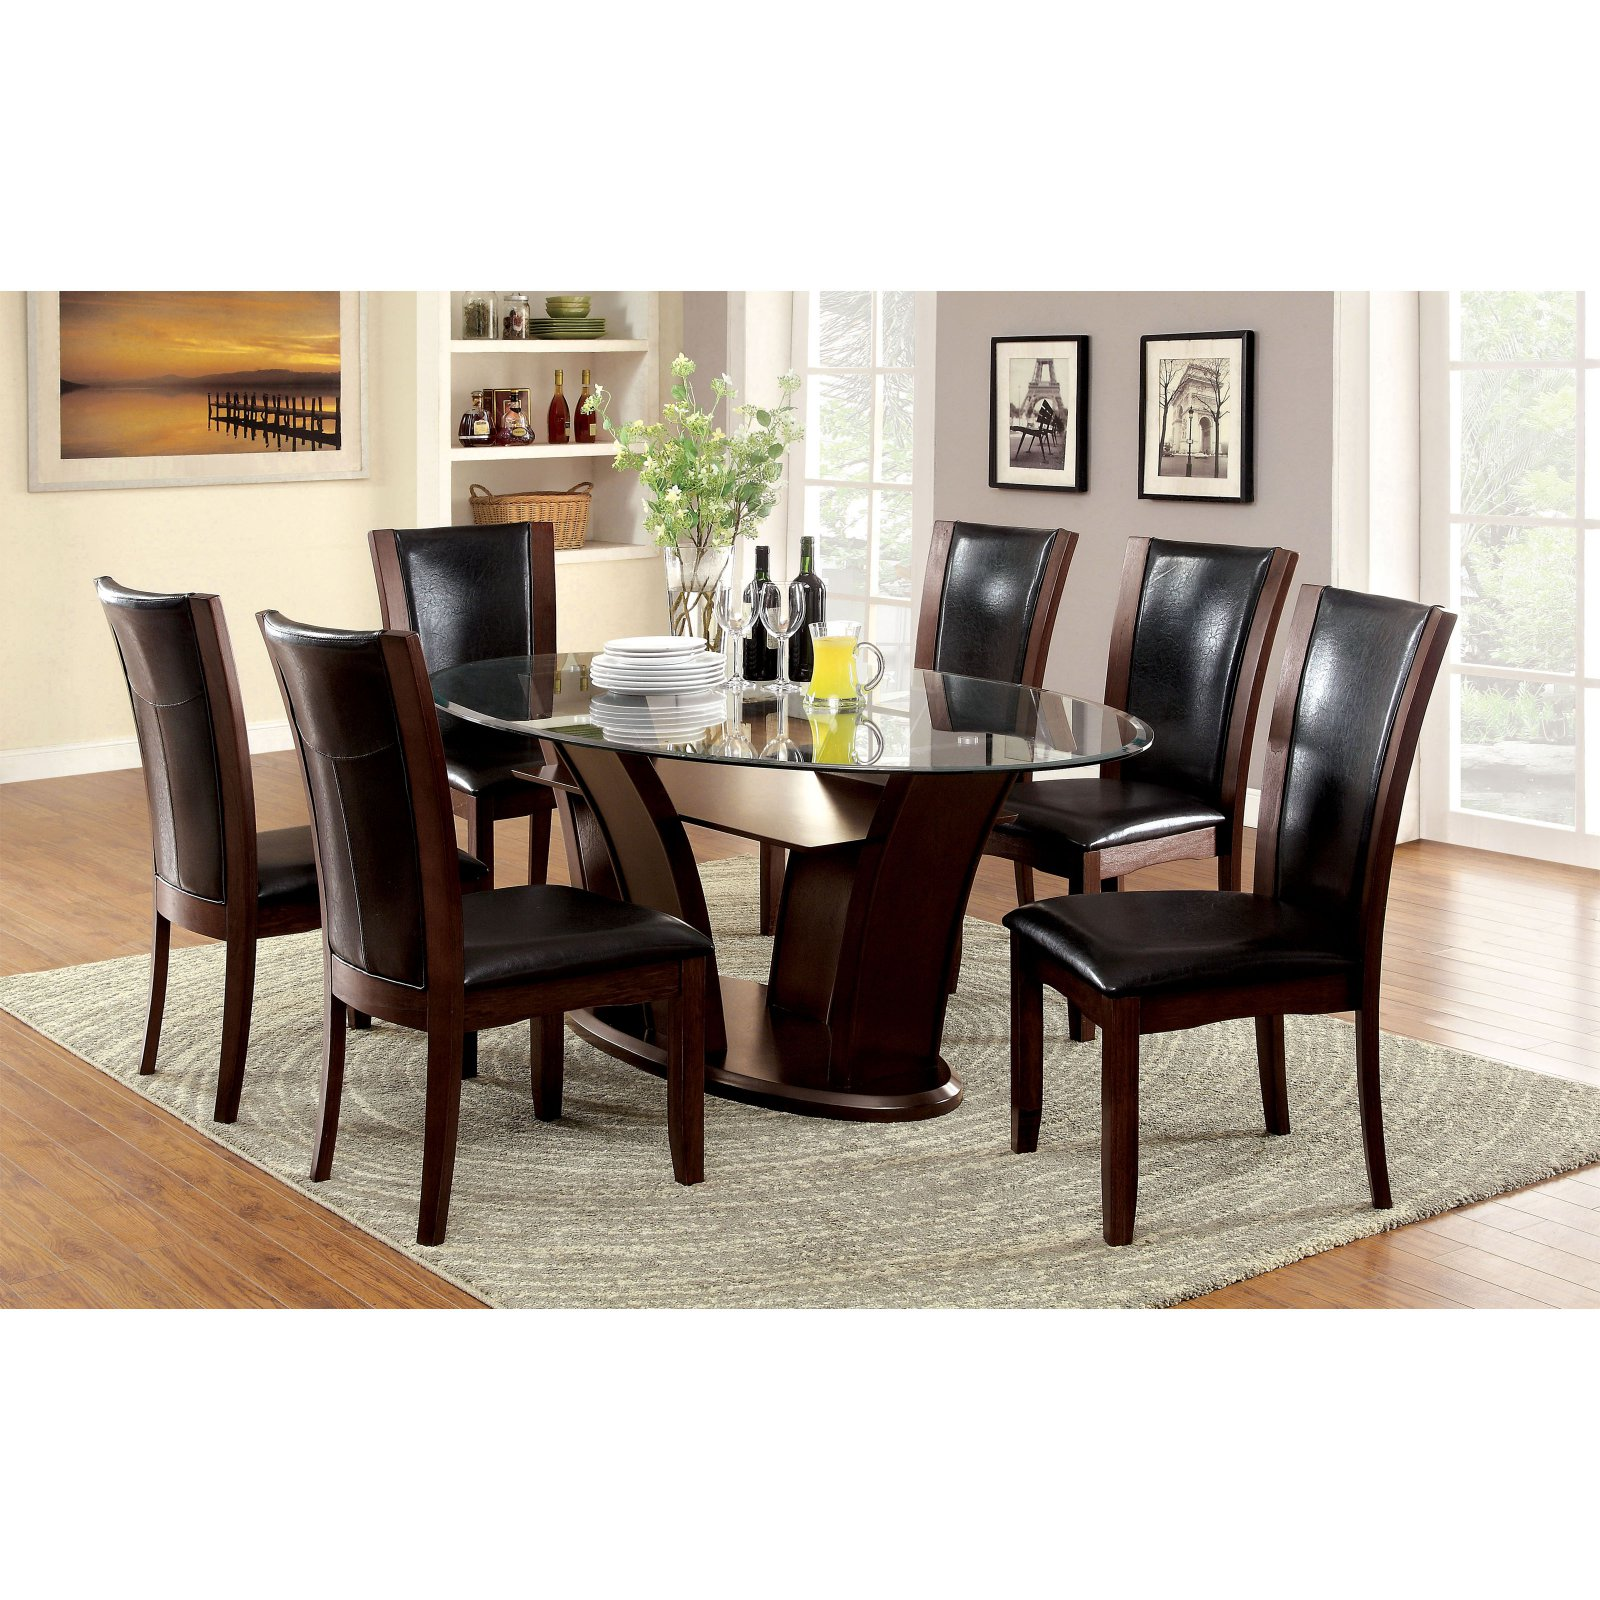 Furniture of America Lavelle 7 Piece Tempered Glass Top Dining Table Set